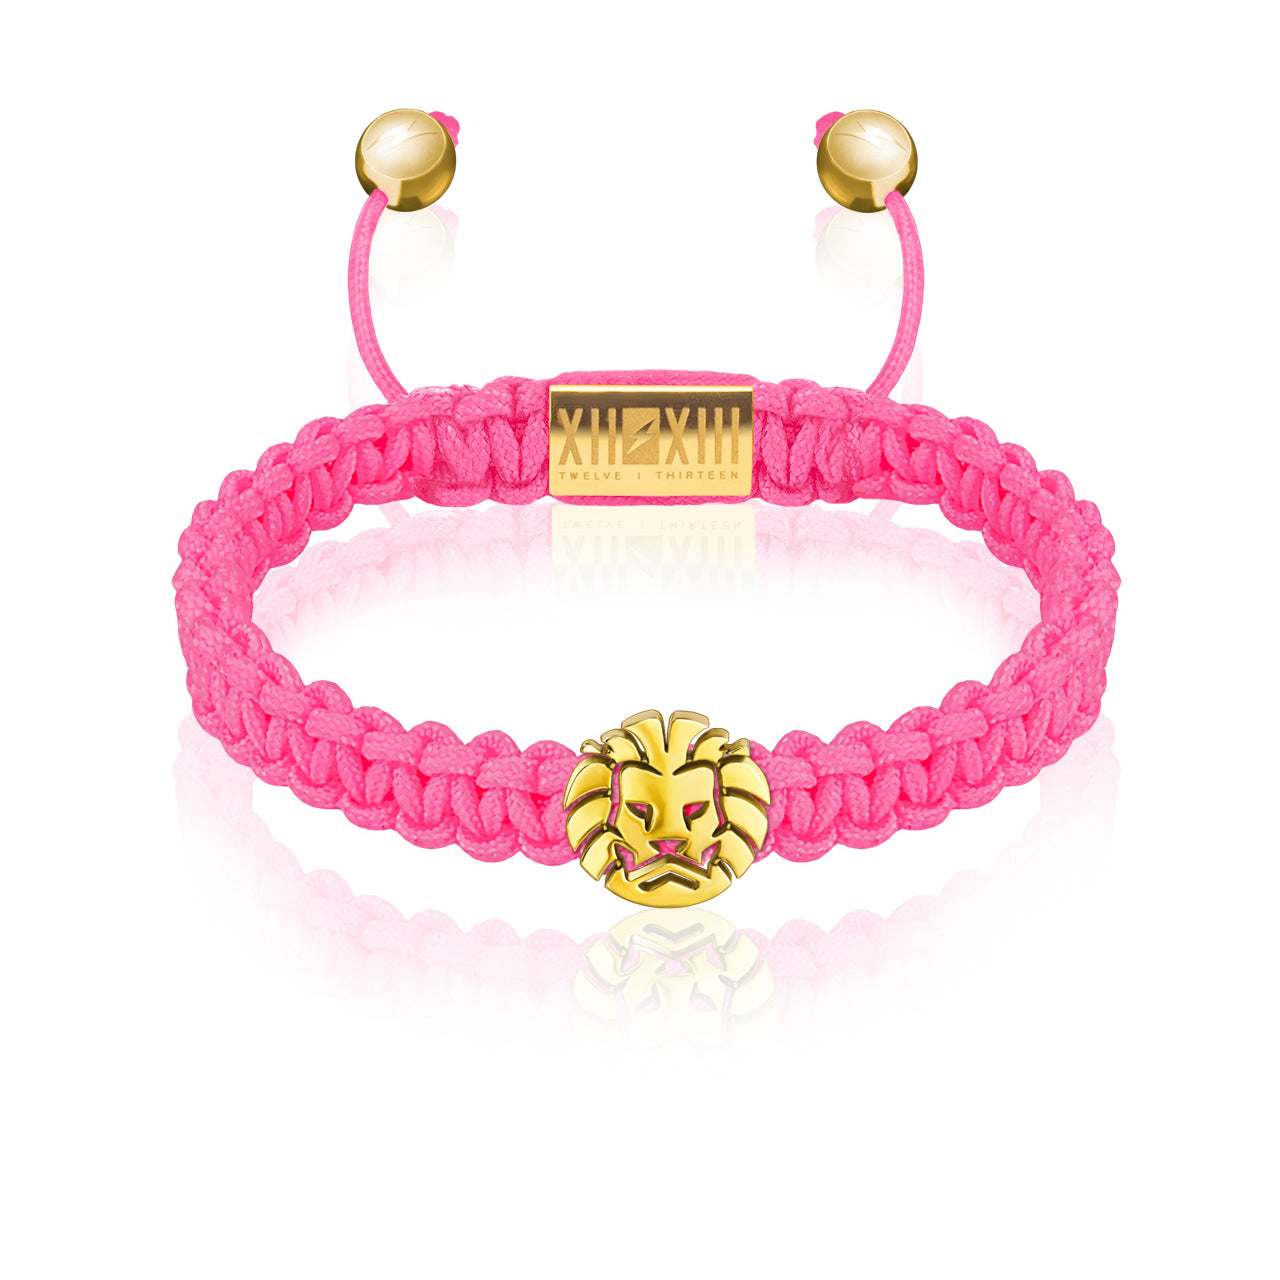 WATCHANISH by Twelve Thirteen Jewelry macramé braided bracelet - Hot Pink/Polished Yellow Gold